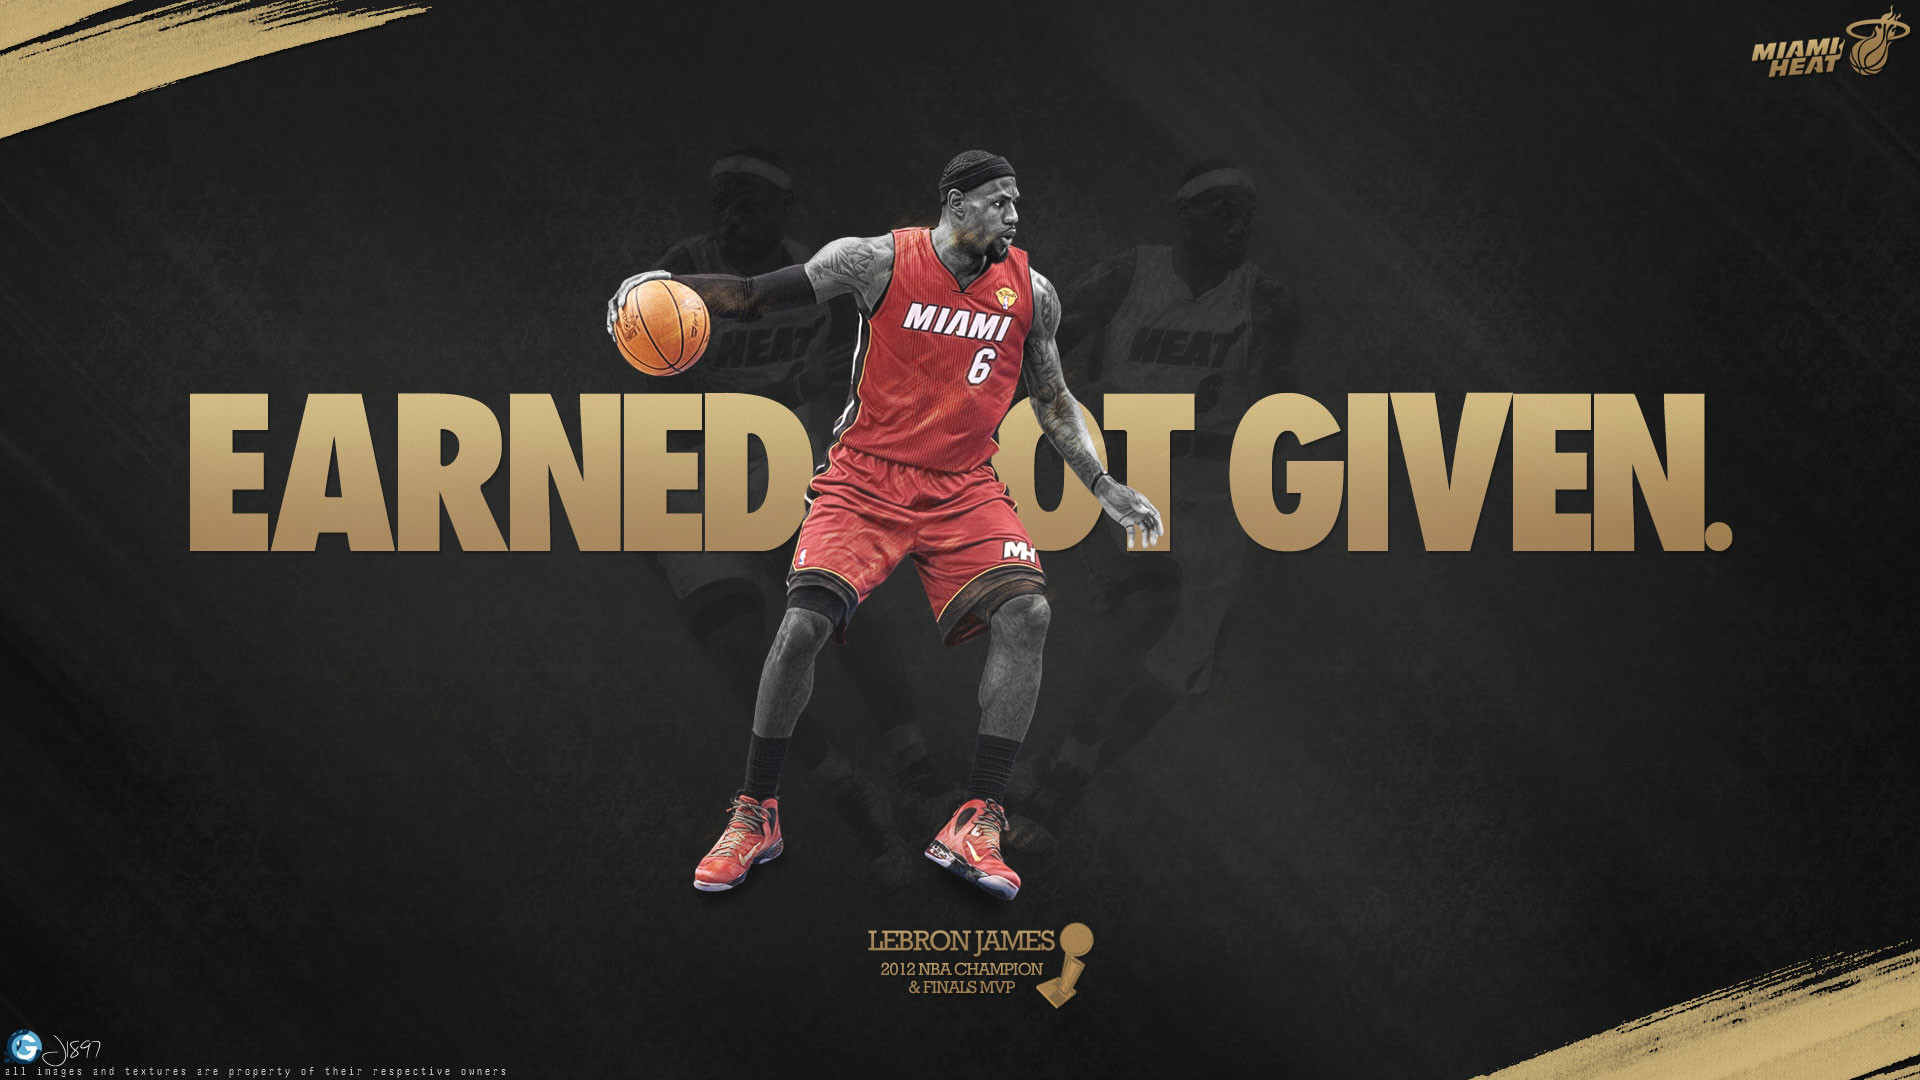 1920x1080 LeBron James Title Earned Not Given Wallpaper